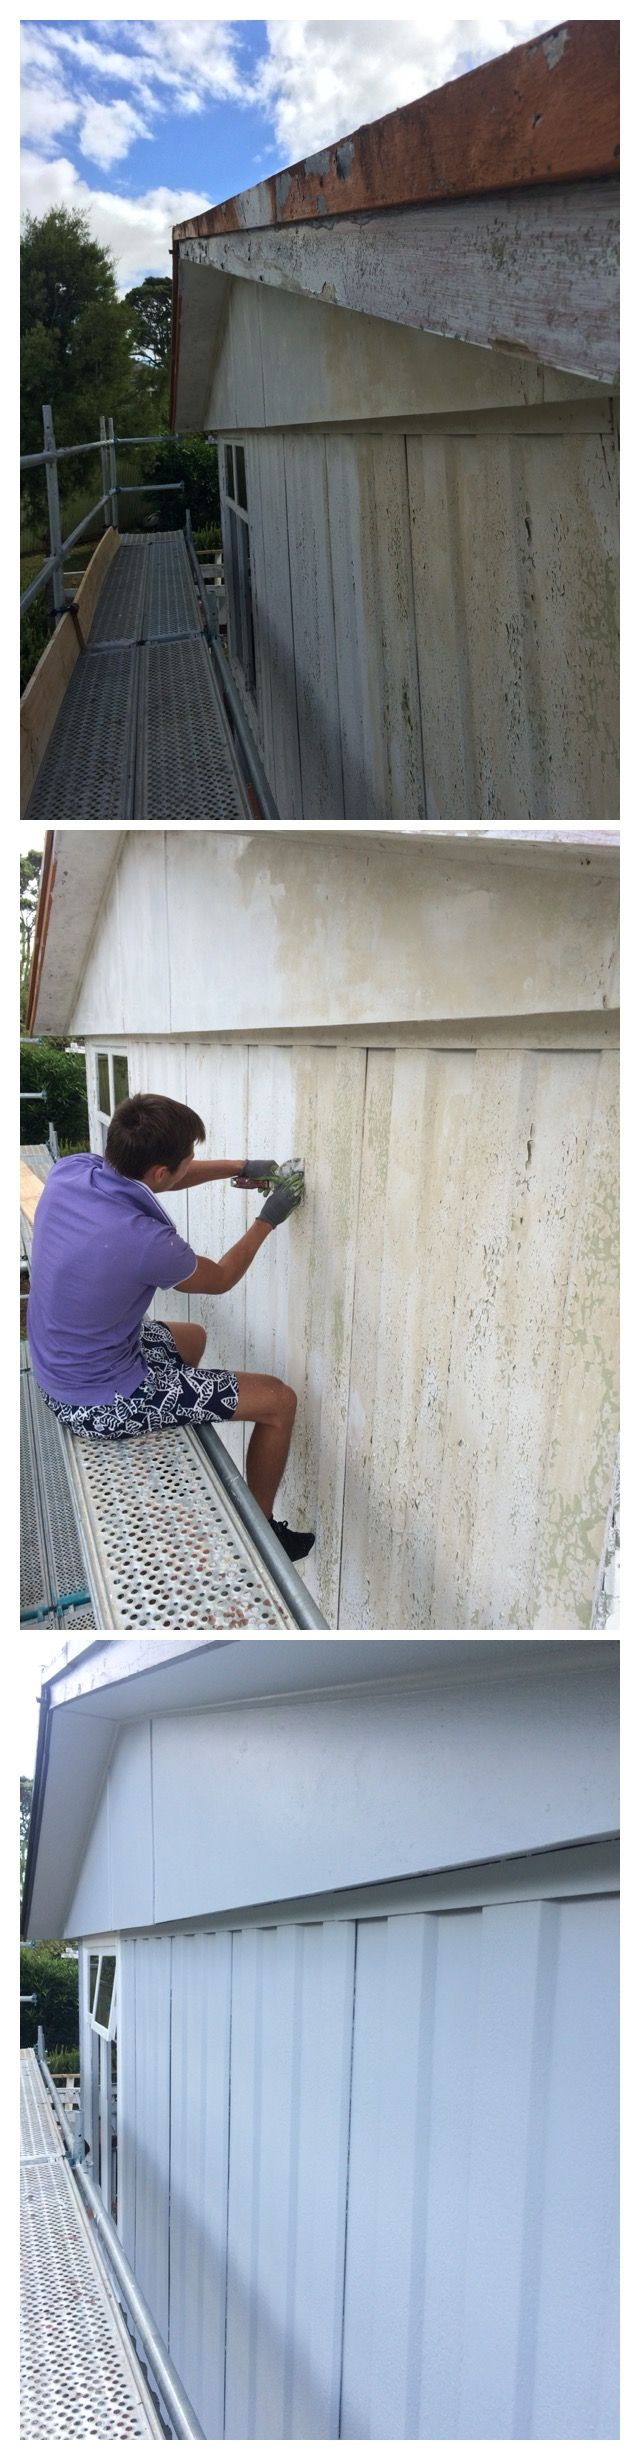 Painting amp remodeling contractors painters northern new jersey - Exterior House Painting Glenfield Auckland Painter North Shore